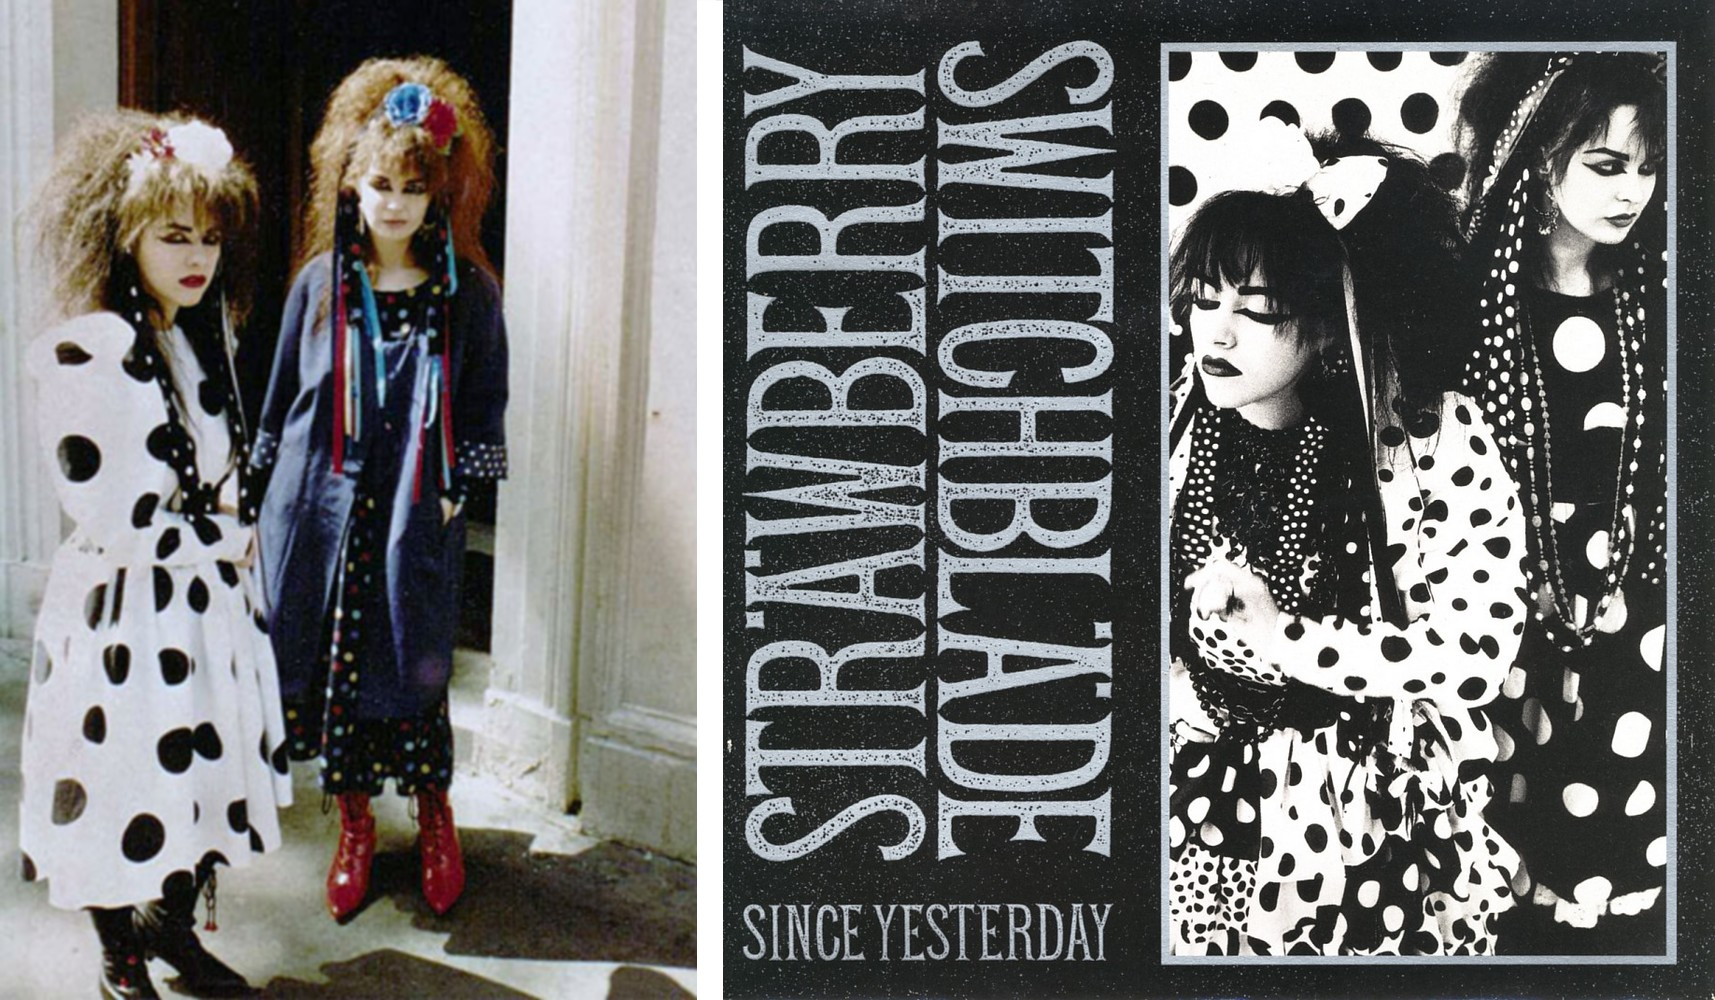 Strawberry Switchblade fashion